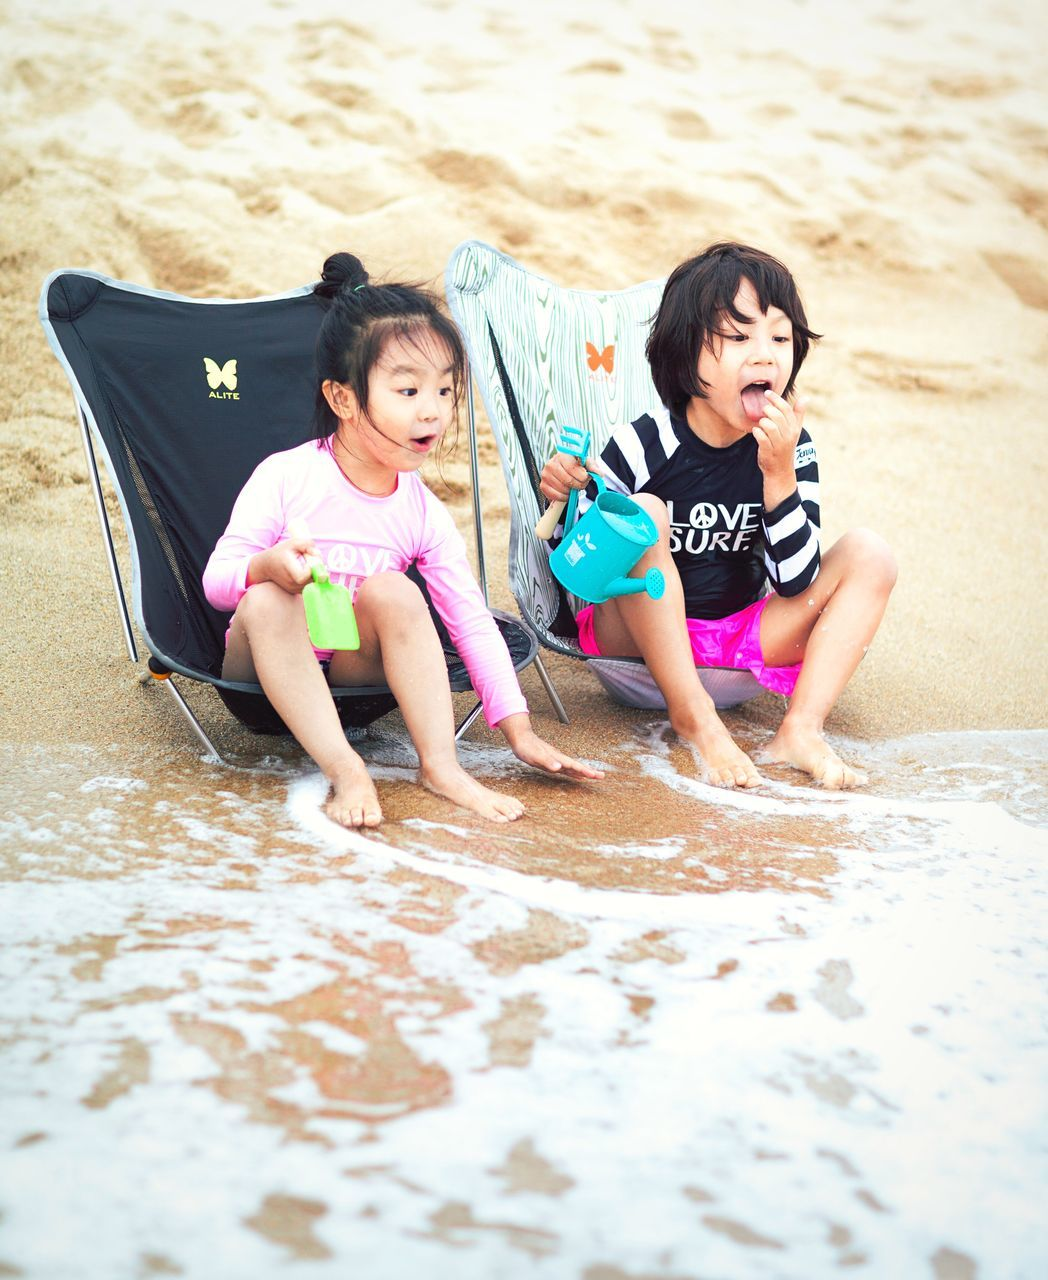 sand, beach, childhood, girls, real people, elementary age, vacations, full length, outdoors, sibling, leisure activity, togetherness, day, child, playing, sitting, summer, two people, happiness, water, sand pail and shovel, friendship, human hand, people